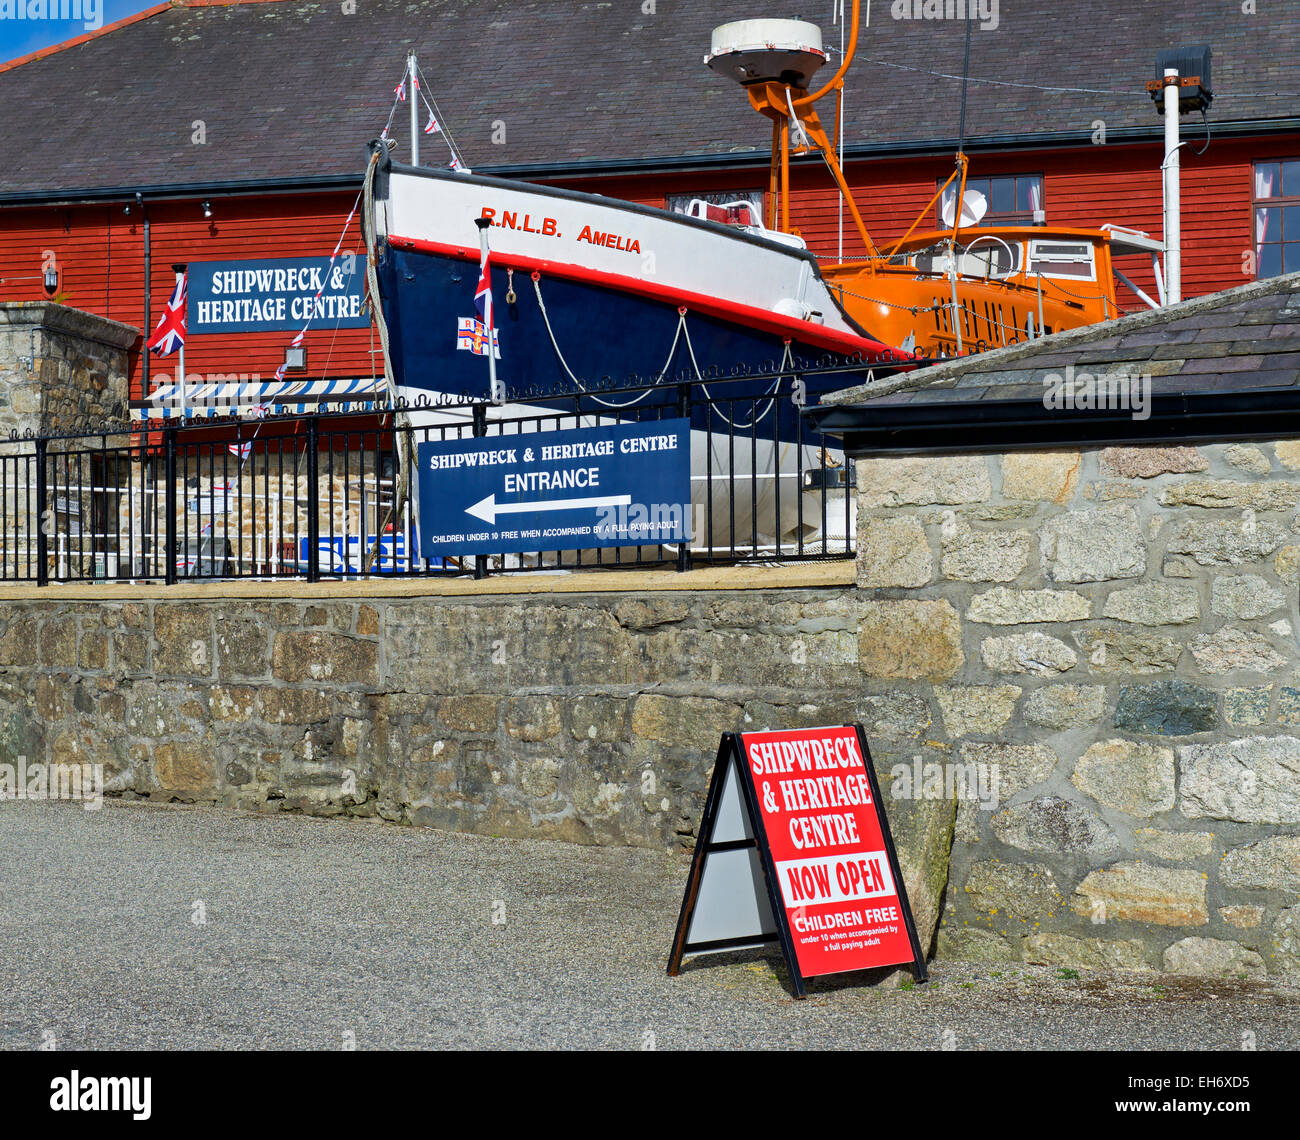 Shipwreck Heritage Centre, and lifeboat, Charlestown, Cornwall, England UK - Stock Image